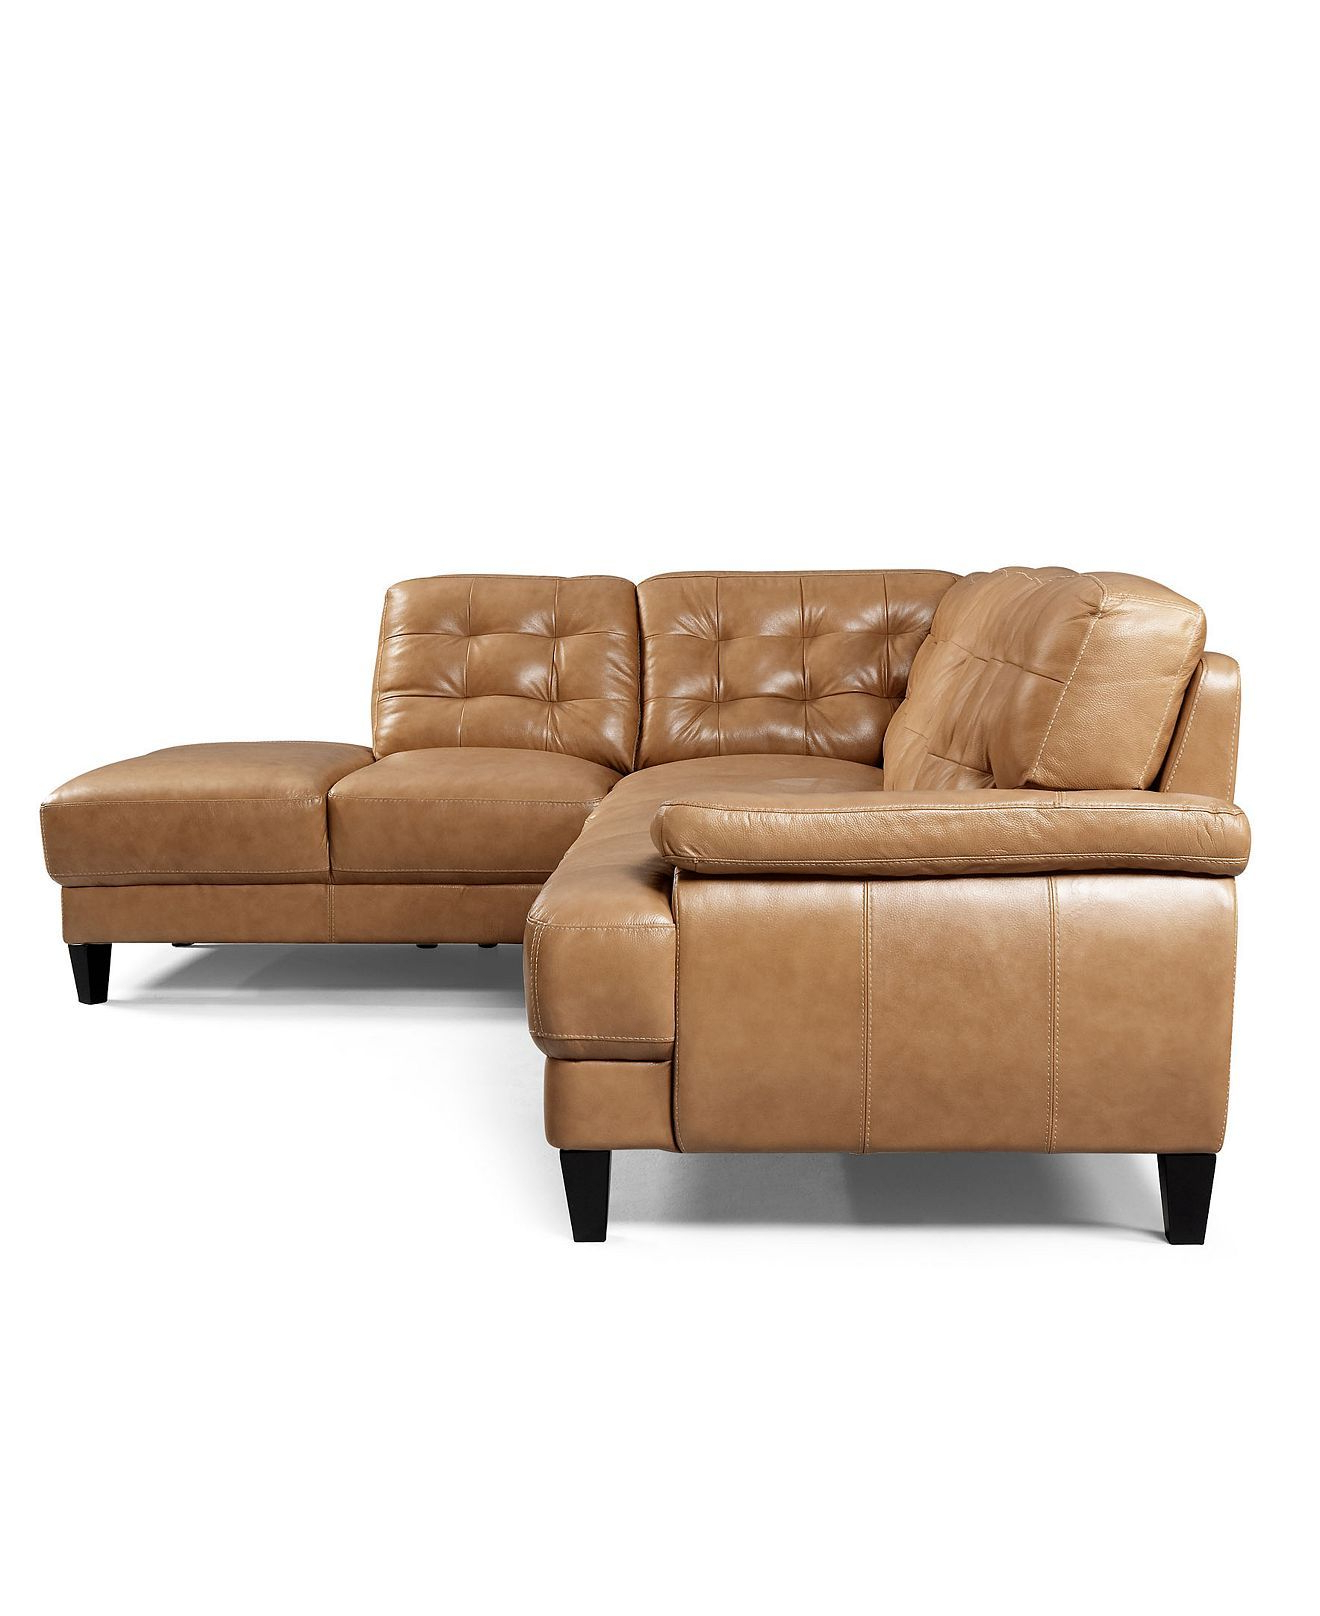 Navigator Manual Reclining Sofas With Most Recent Low Profile Reclining Sofa – Microfiber Power Reclining (View 5 of 8)